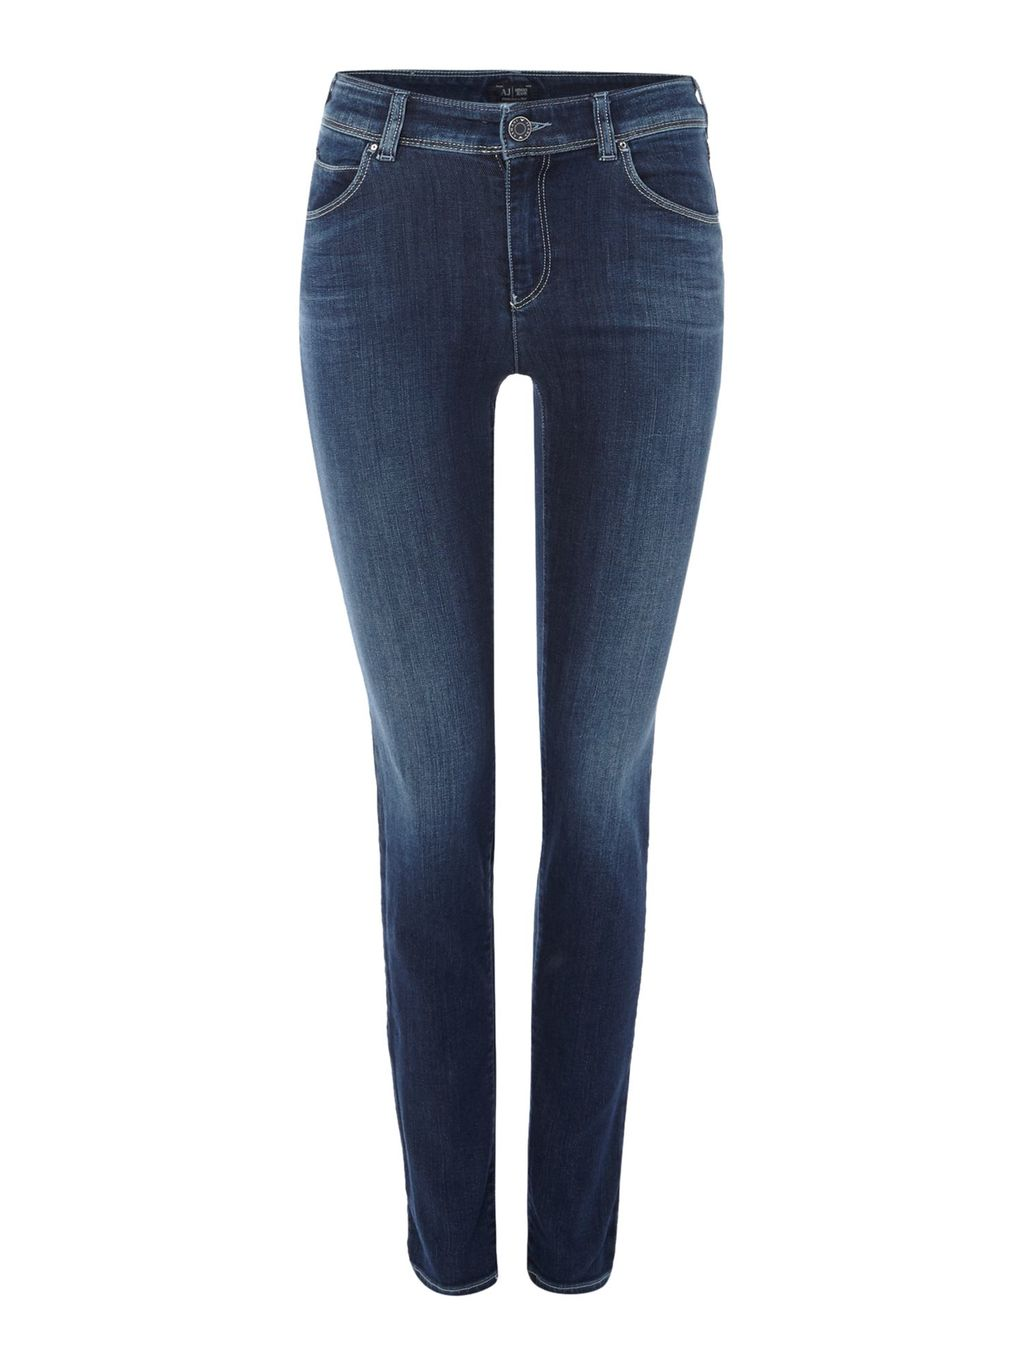 J20 Lilac High Rise Super Skinny Jean In Mid Wash, Denim Mid Wash - style: skinny leg; length: standard; pattern: plain; pocket detail: traditional 5 pocket; waist: mid/regular rise; predominant colour: denim; occasions: casual; fibres: cotton - stretch; jeans detail: shading down centre of thigh; texture group: denim; pattern type: fabric; season: s/s 2016; wardrobe: basic